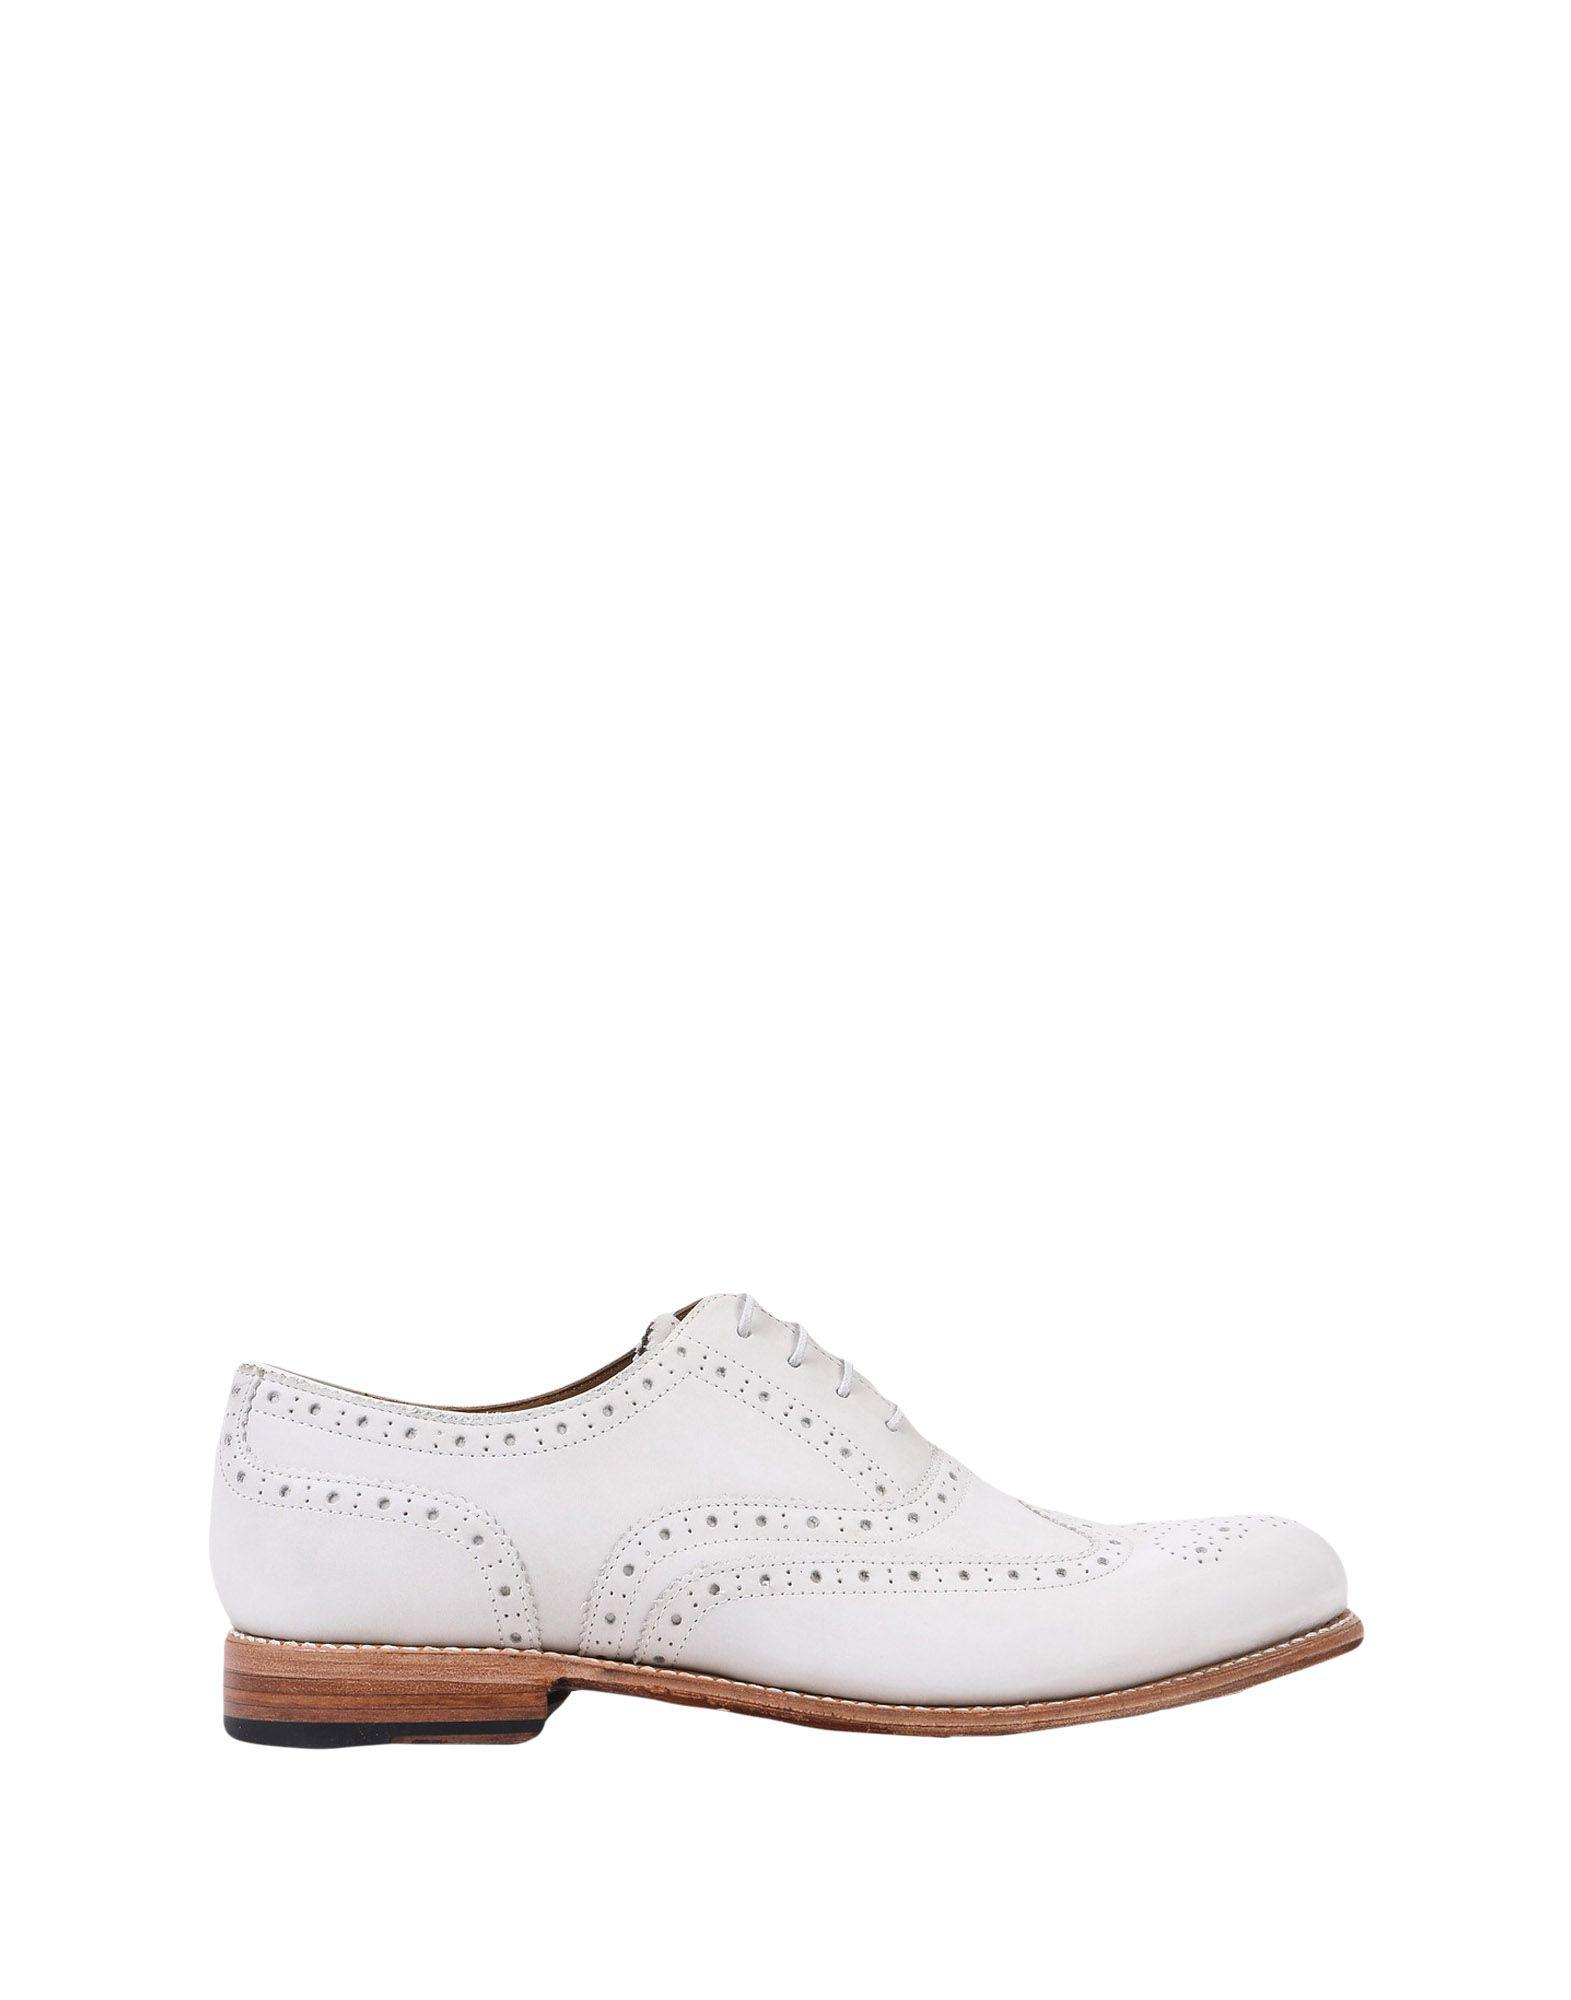 8ee63664d82 Lyst - Grenson Lace-up Shoe in White